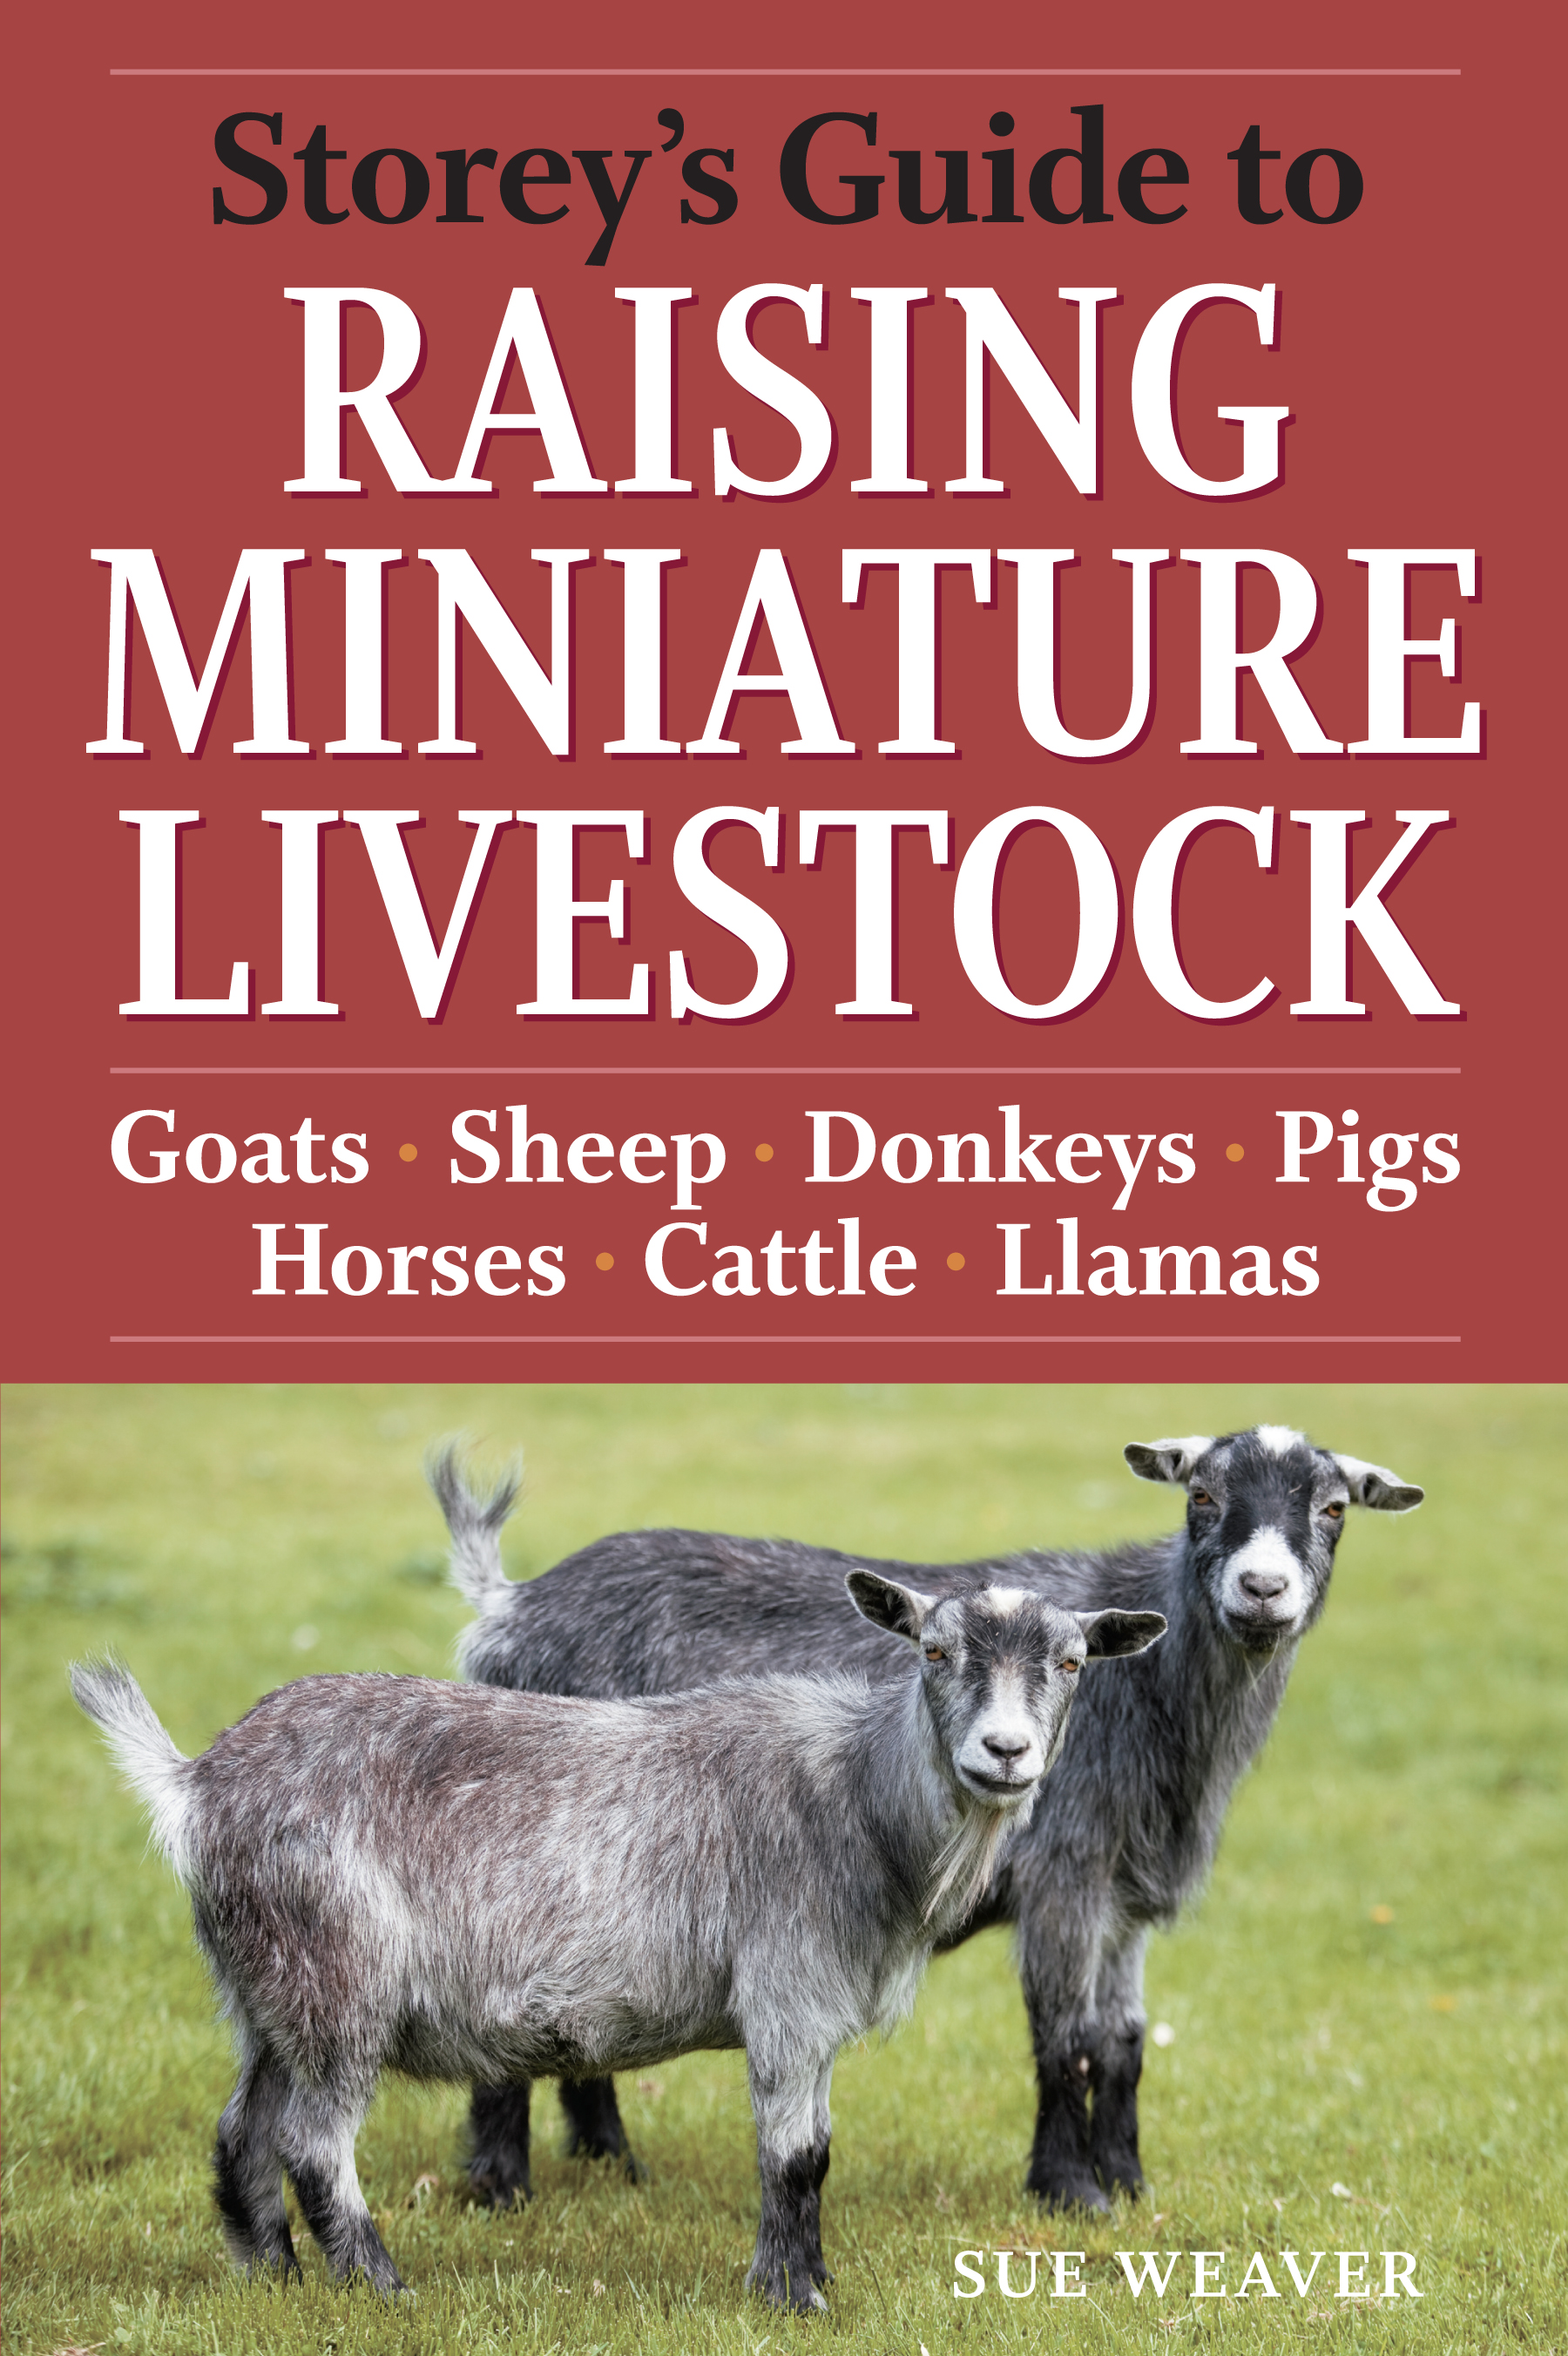 Storey's Guide to Raising Miniature Livestock Goats, Sheep, Donkeys, Pigs, Horses, Cattle, Llamas - Sue Weaver